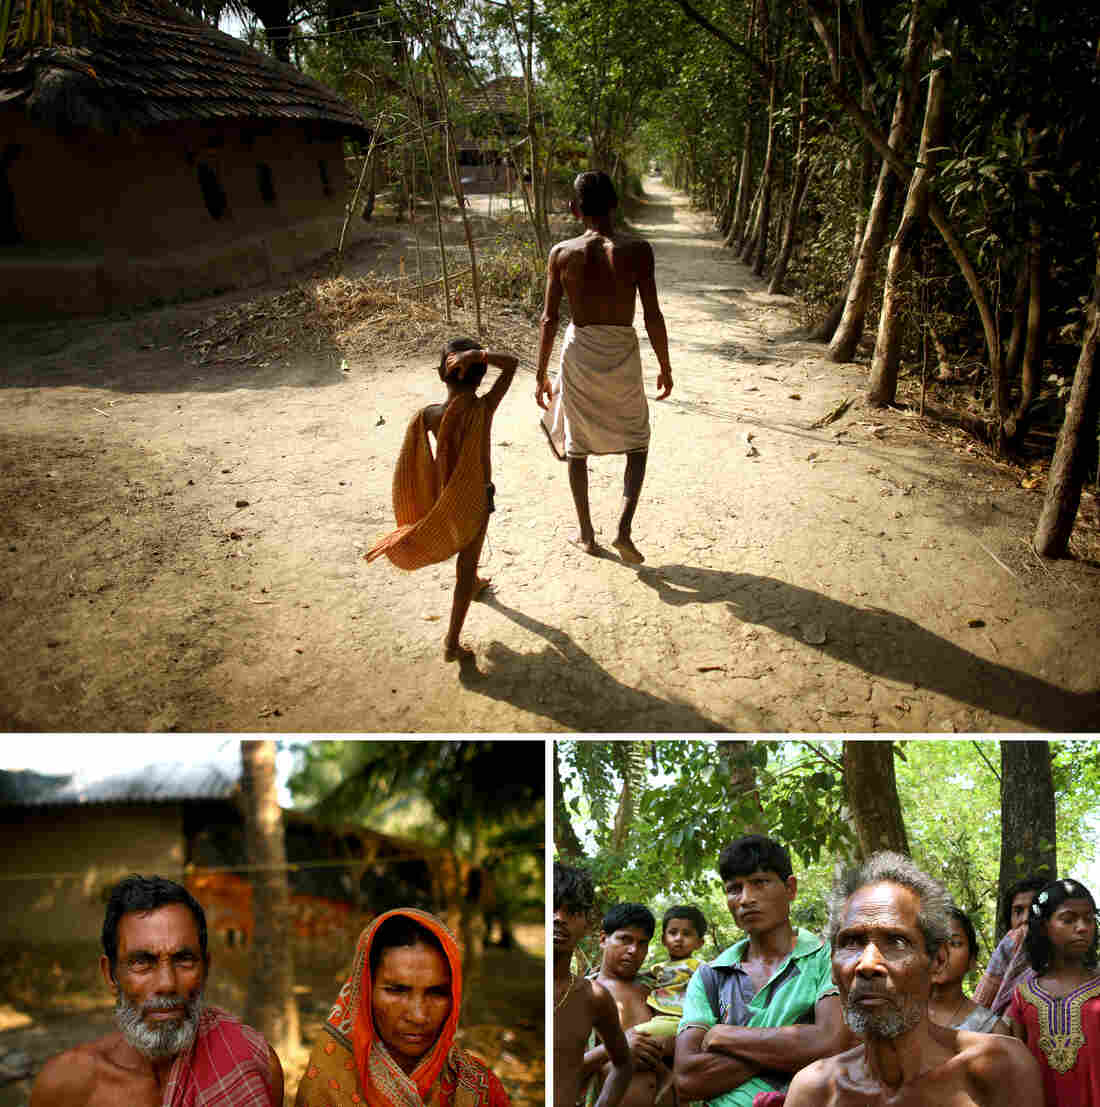 Thousands have been relocated from Ghoramara island to nearby Sagar island, including (counterclockwise from top) Sushil Mali, who walks with his grandson, Muntaz Sheikh and his wife, Zarina Bibi. Debendra Tarek, 80, standing with other villagers, has stayed on Ghoramara.